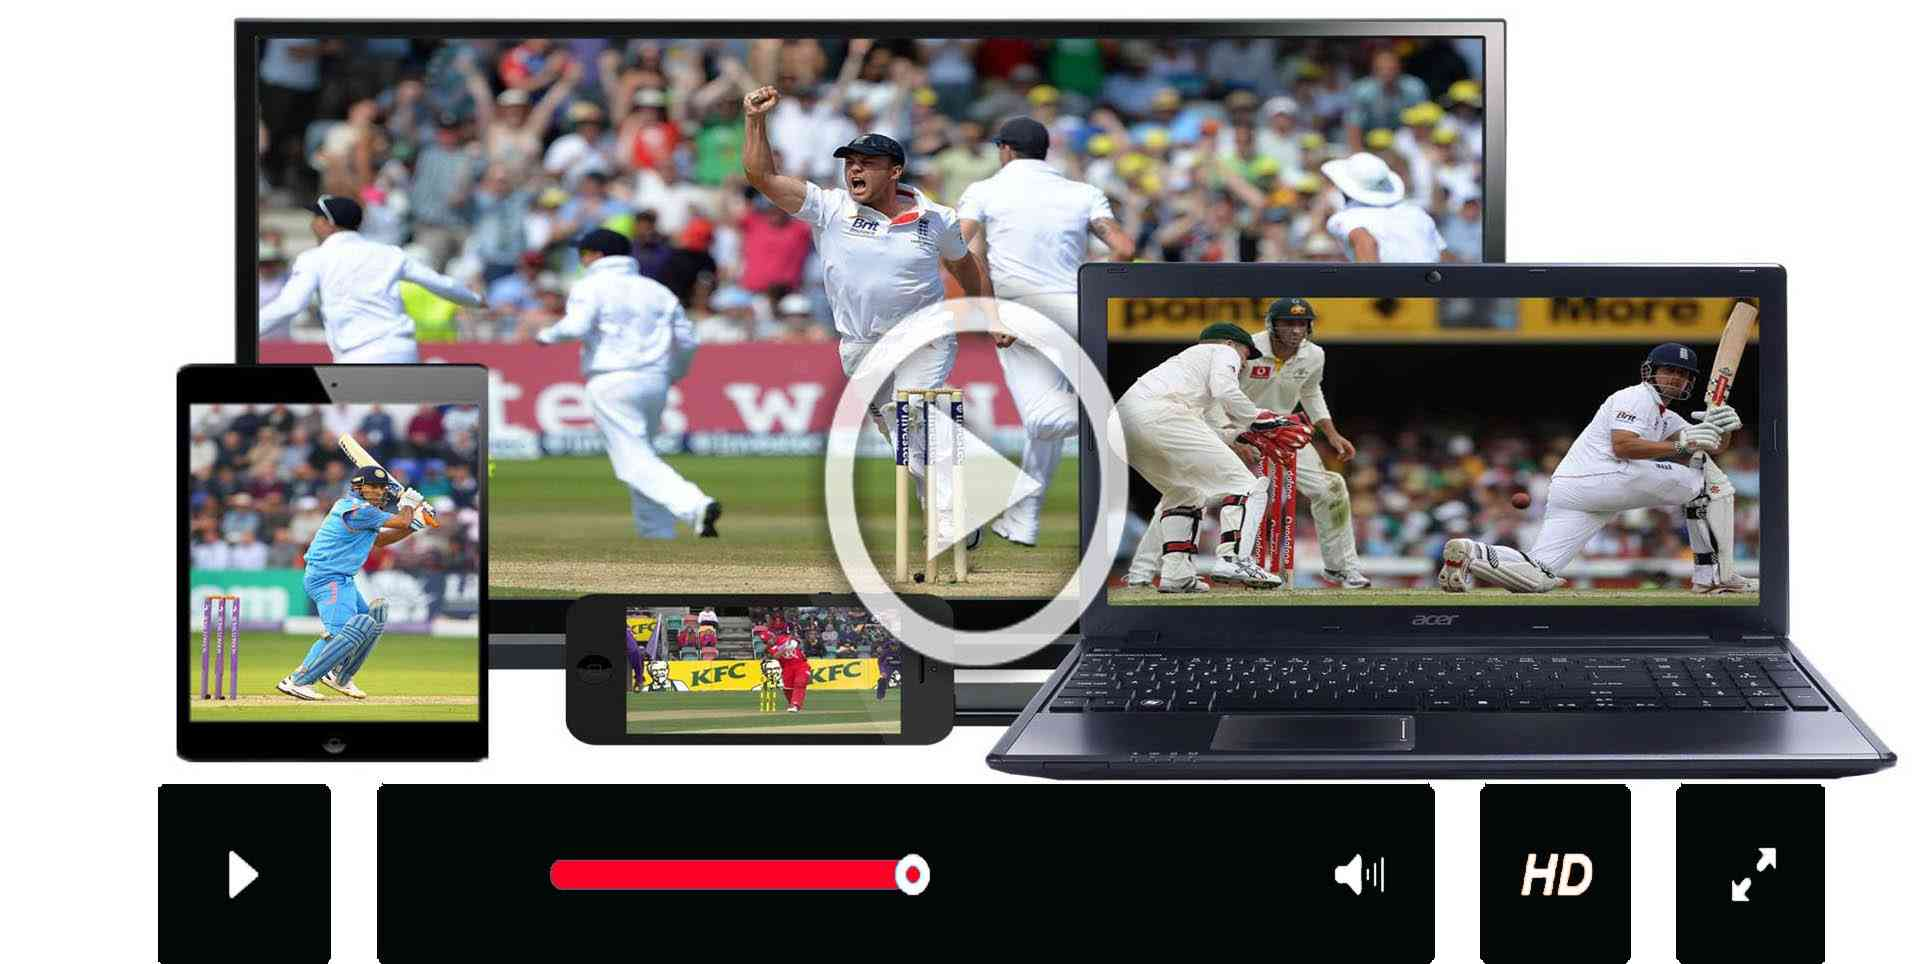 2017 ICC Champions Trophy streaming live